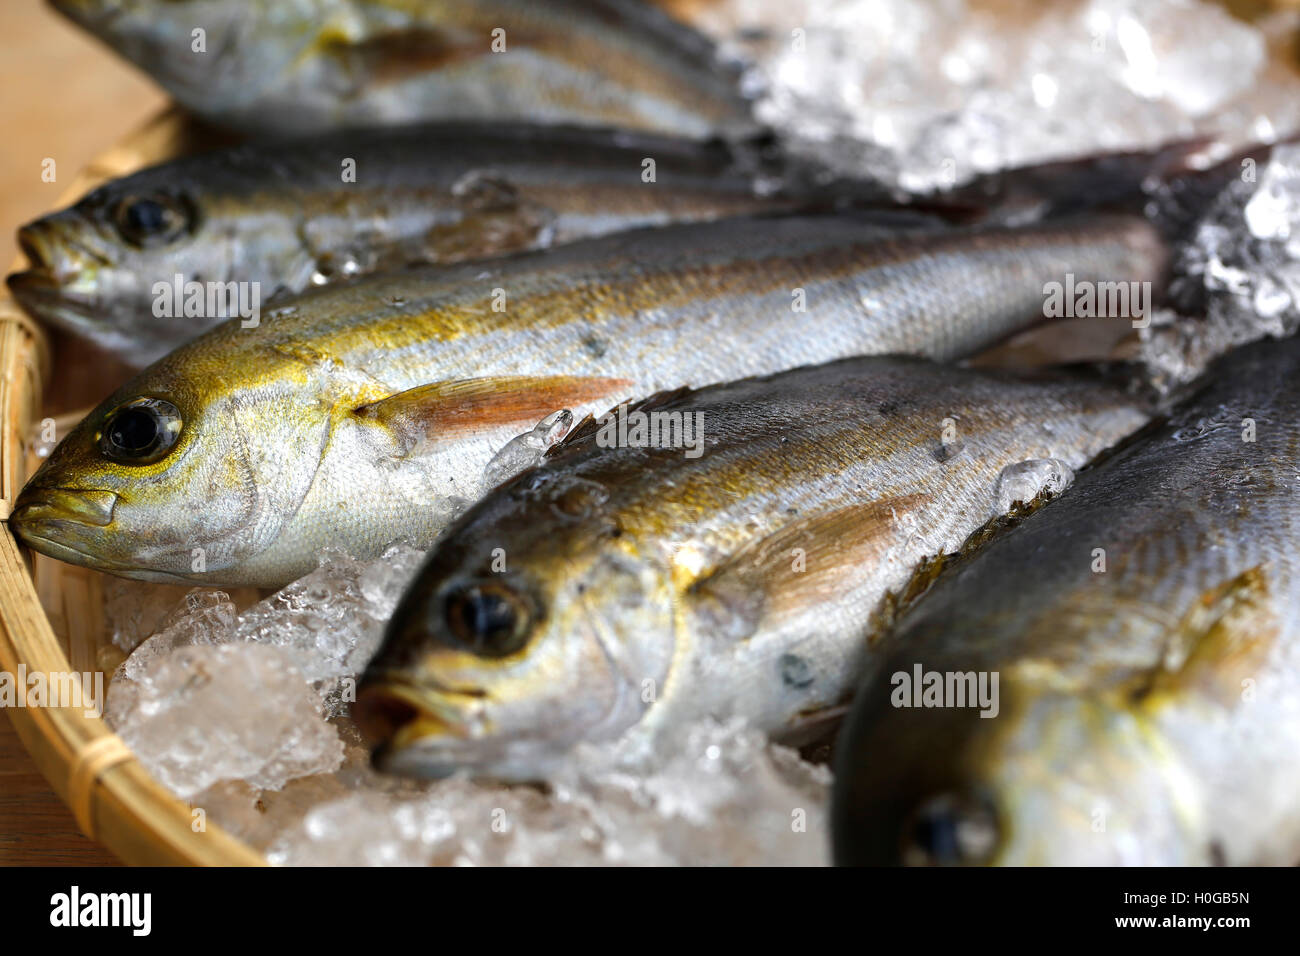 Fresh Chigyo fish caught in the morning on bamboo tray with ice - Stock Image